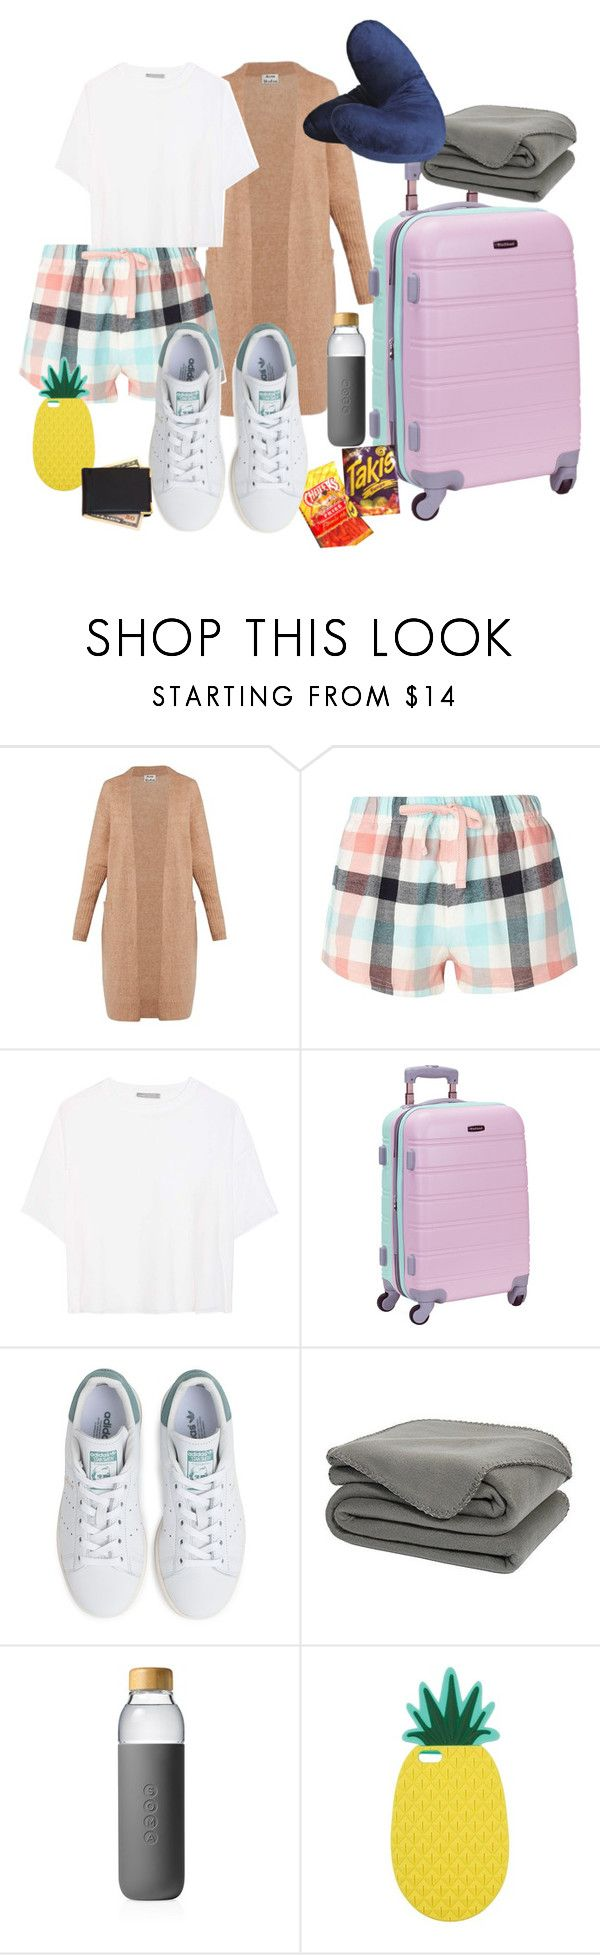 """Night Travel"" by keekeemarie02 ❤ liked on Polyvore featuring Acne Studios, Dorothy Perkins, Vince, Rockland Luggage, adidas, Soma, Miss Selfridge and Royce Leather"